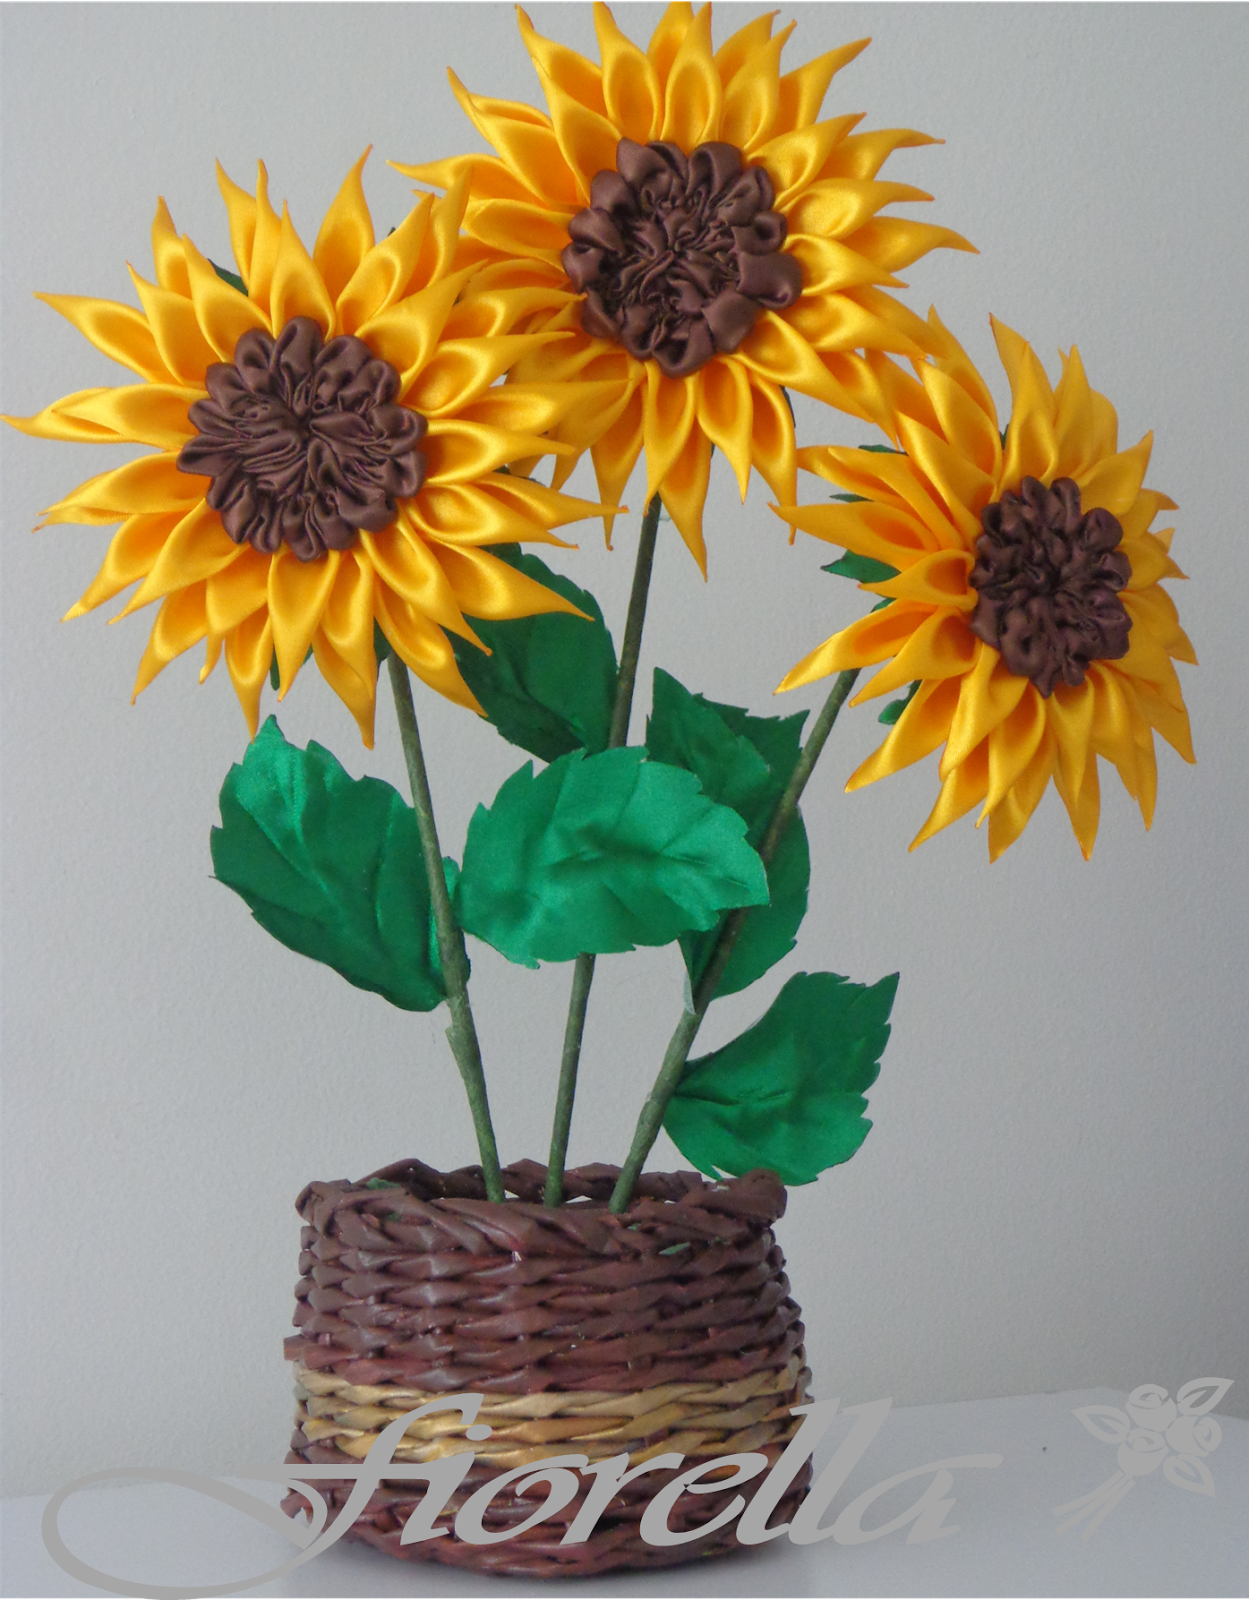 Fiorella Flores en tela: Video tutorial #12 girasoles en raso |  Manualidades, Decoraciones de girasol, Girasoles